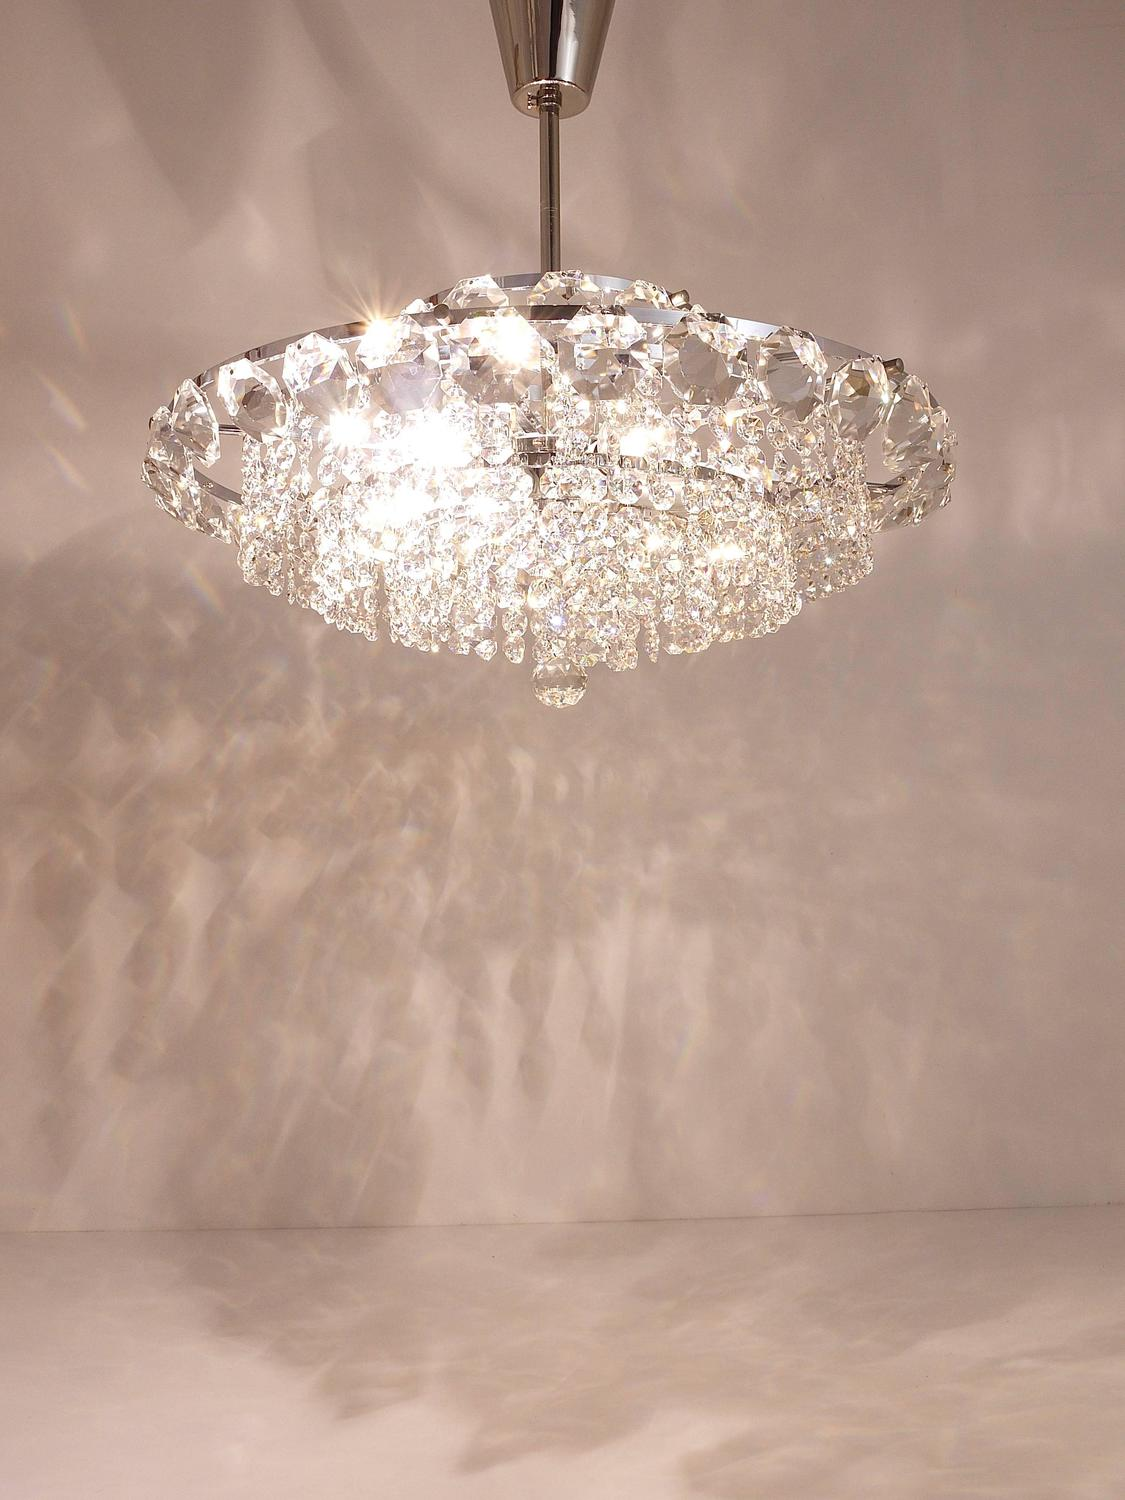 Most beautiful chandeliers 17 world s most beautiful chandeliers mostbeautifulthings 27 - Most popular chandeliers ...